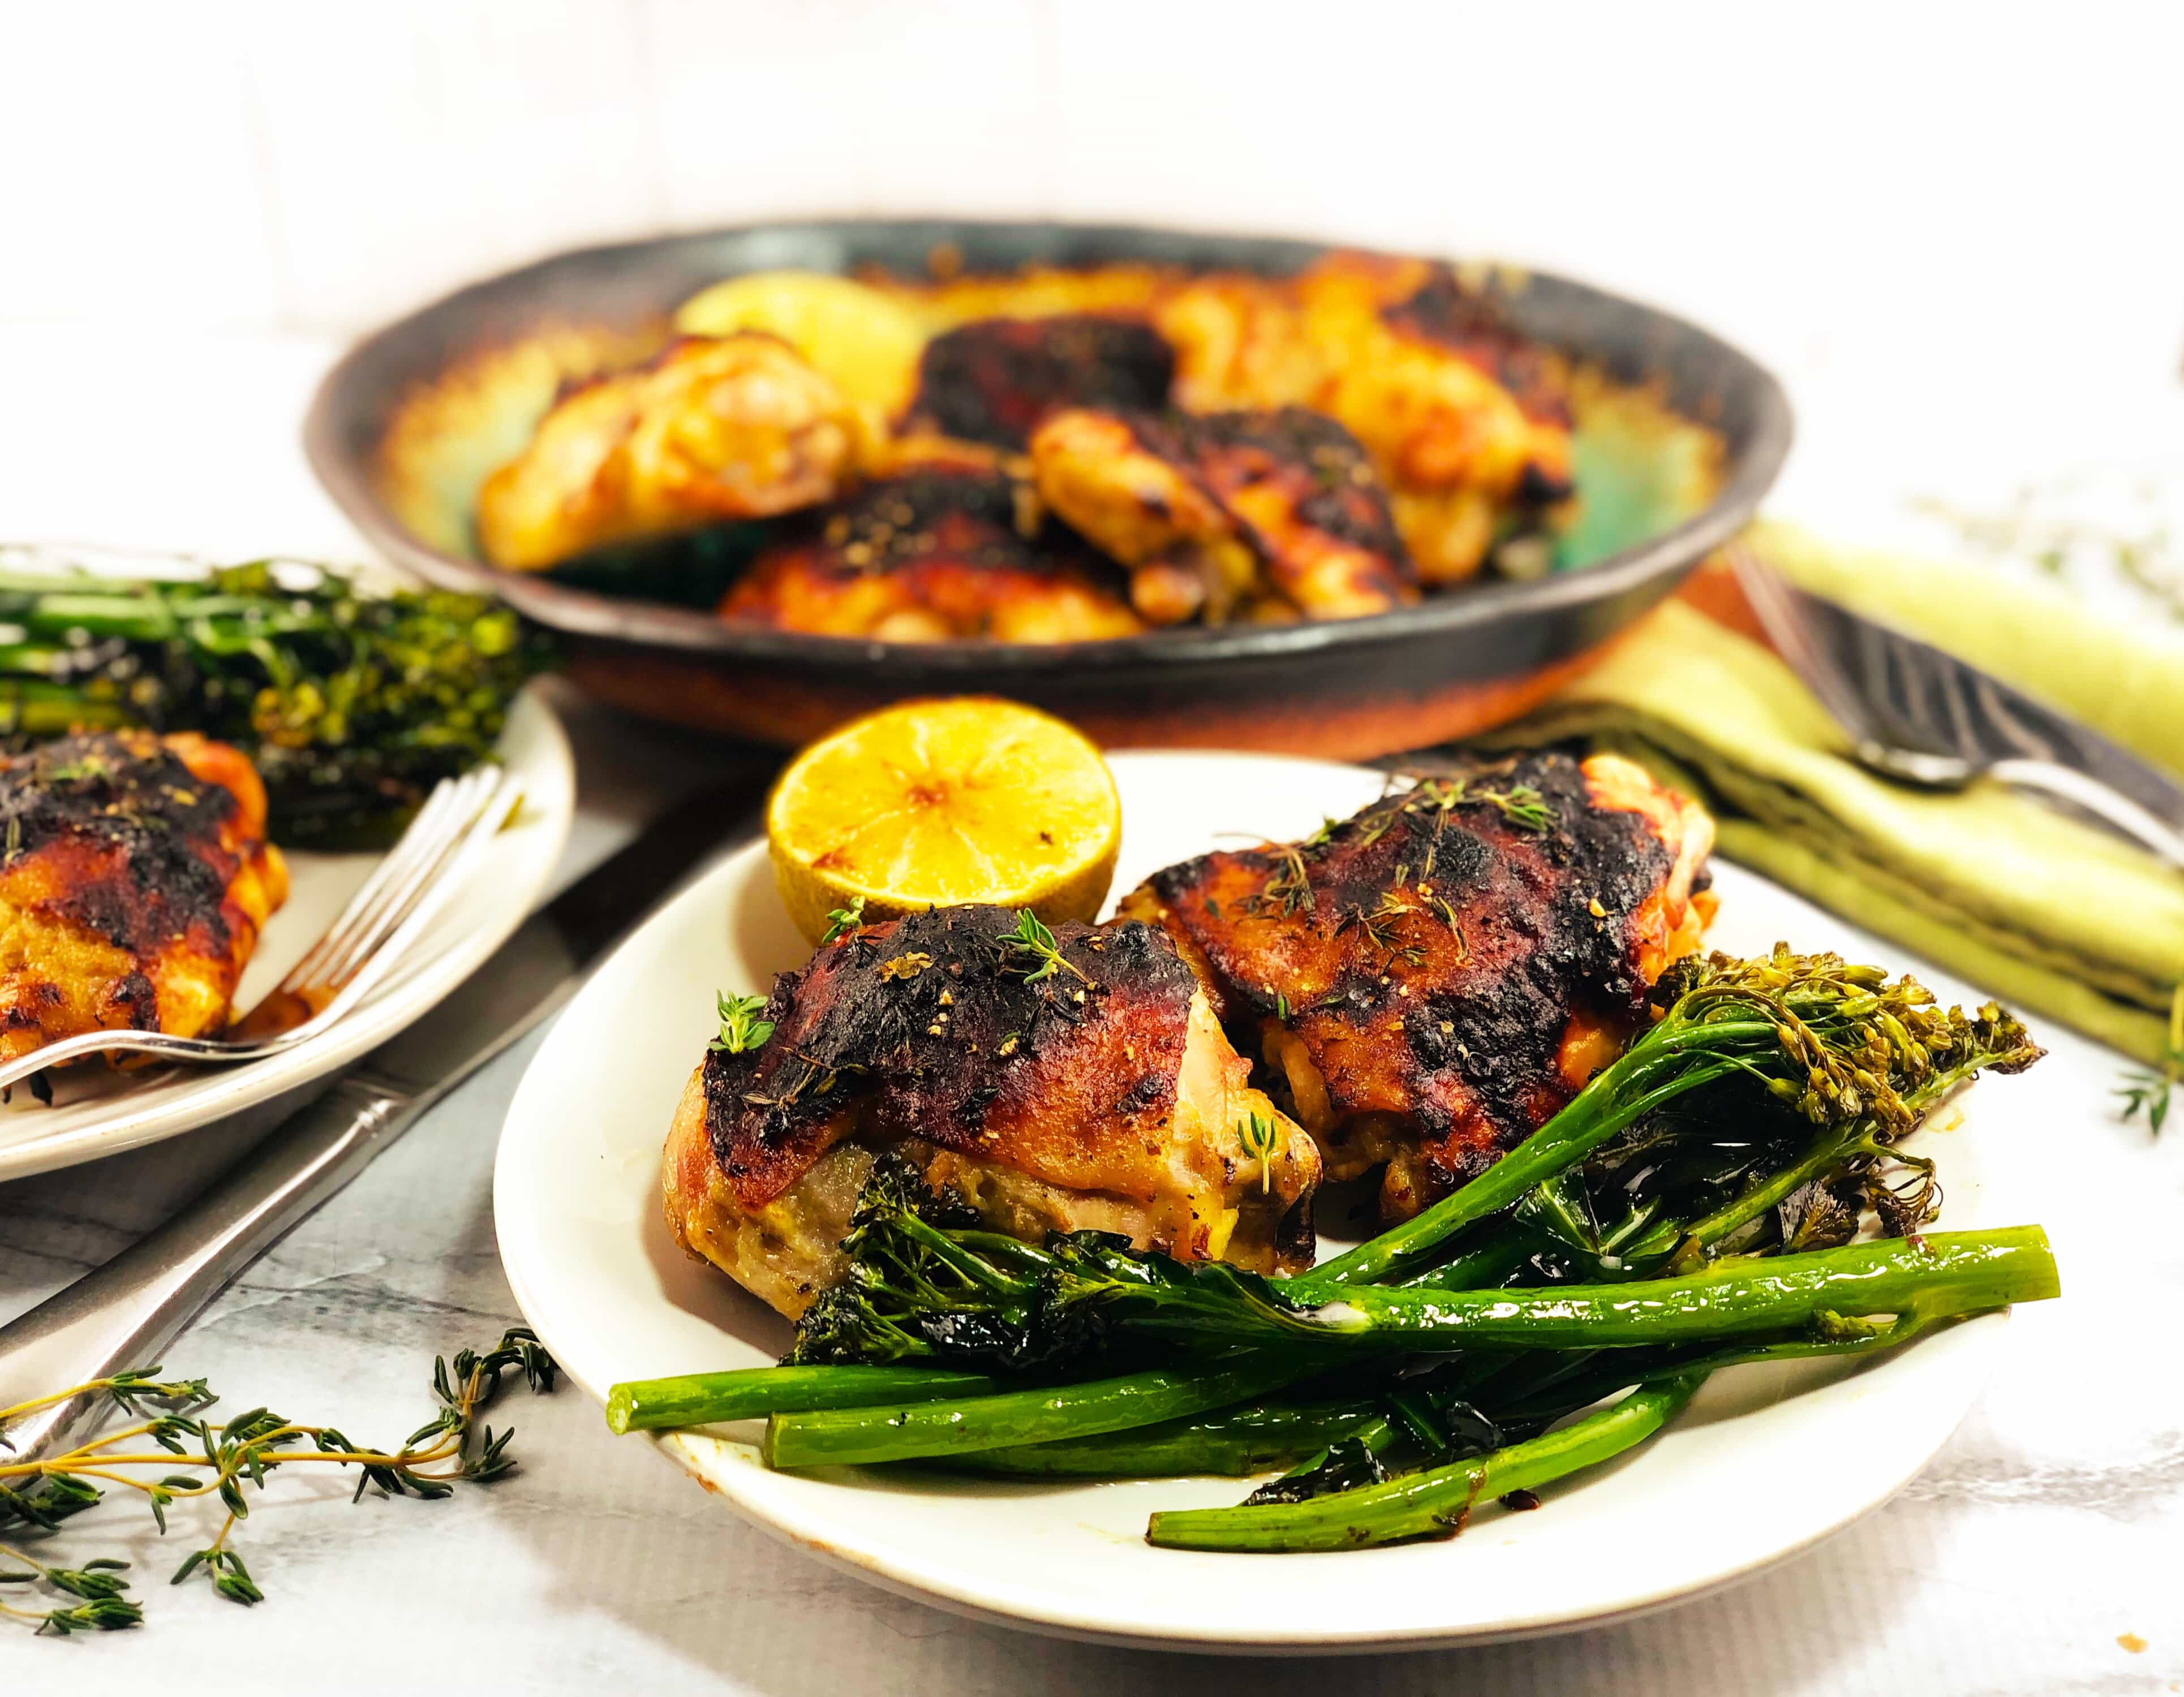 Rhubarb Chicken with Broccolini and Lime Wedge